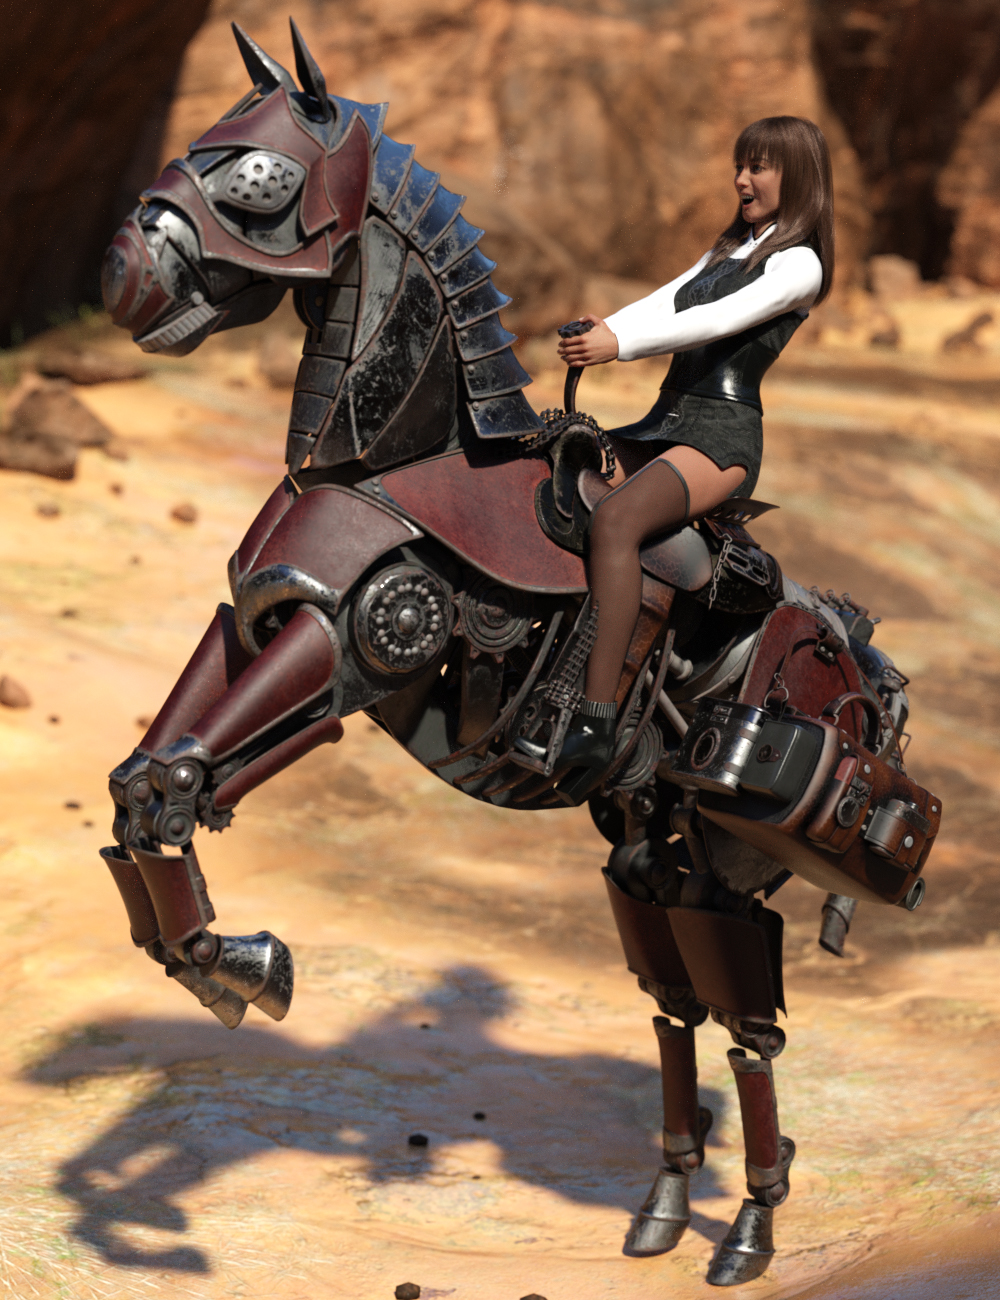 Steampunk Horse by: Charlie, 3D Models by Daz 3D